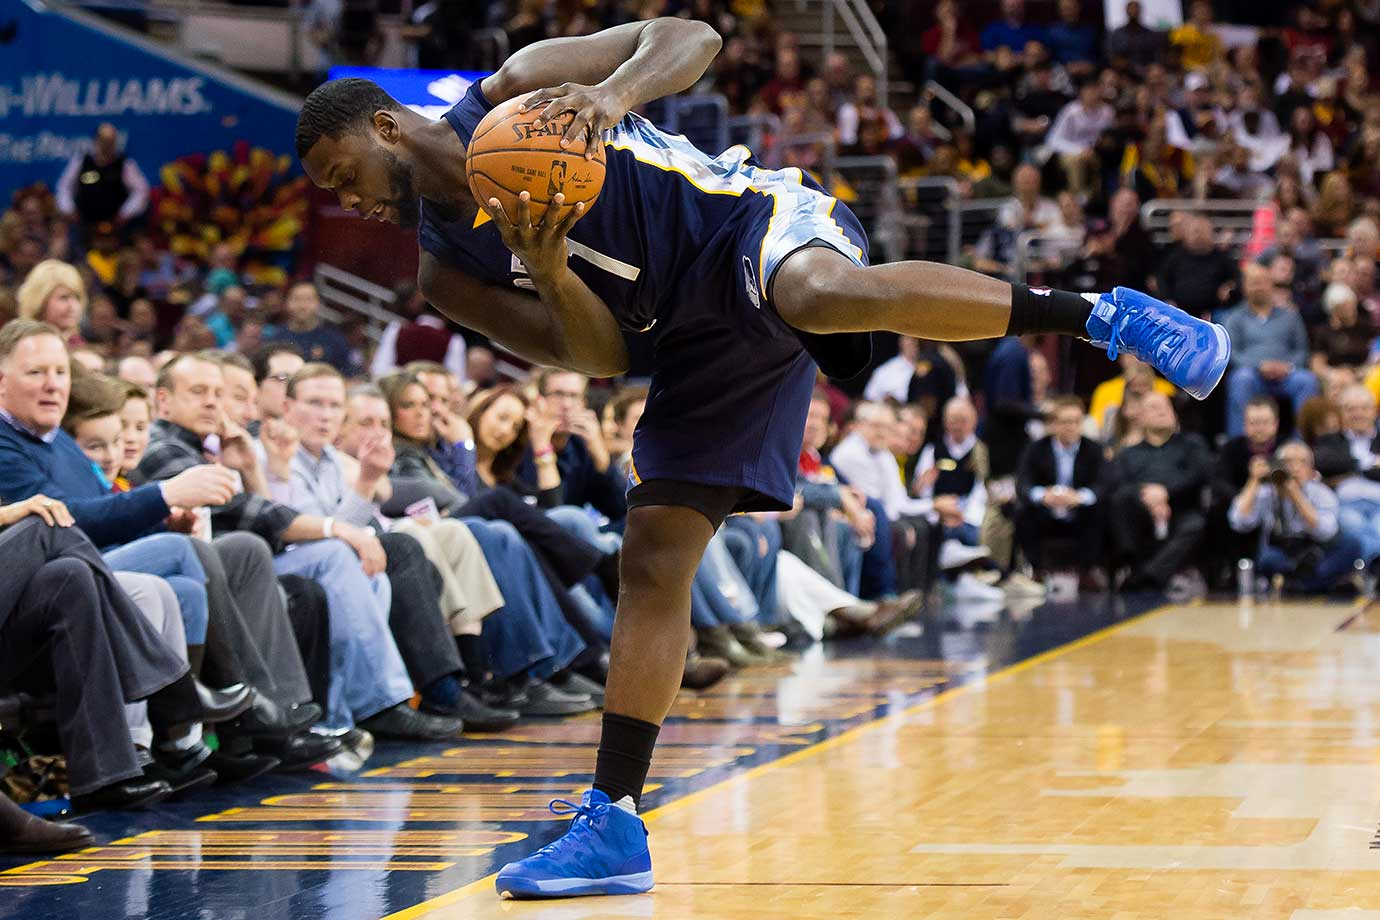 Lance Stephenson of Memphis tries to stay in bounds in a game against the Cleveland Cavaliers.